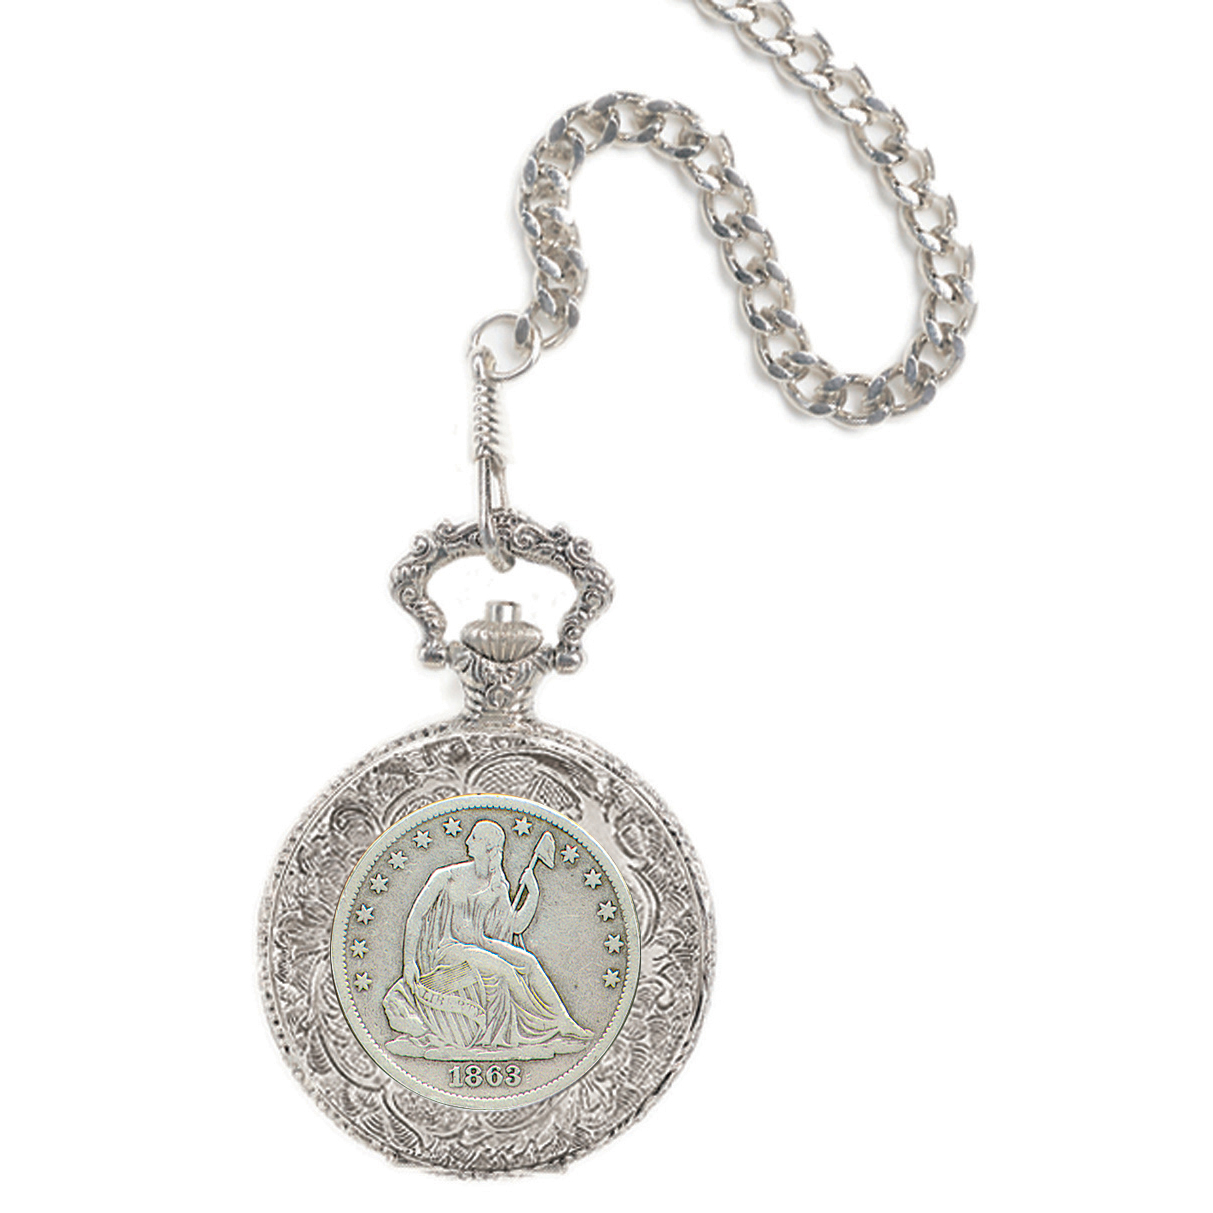 Seated Liberty Silver Half Dollar Coin Pocket Watch